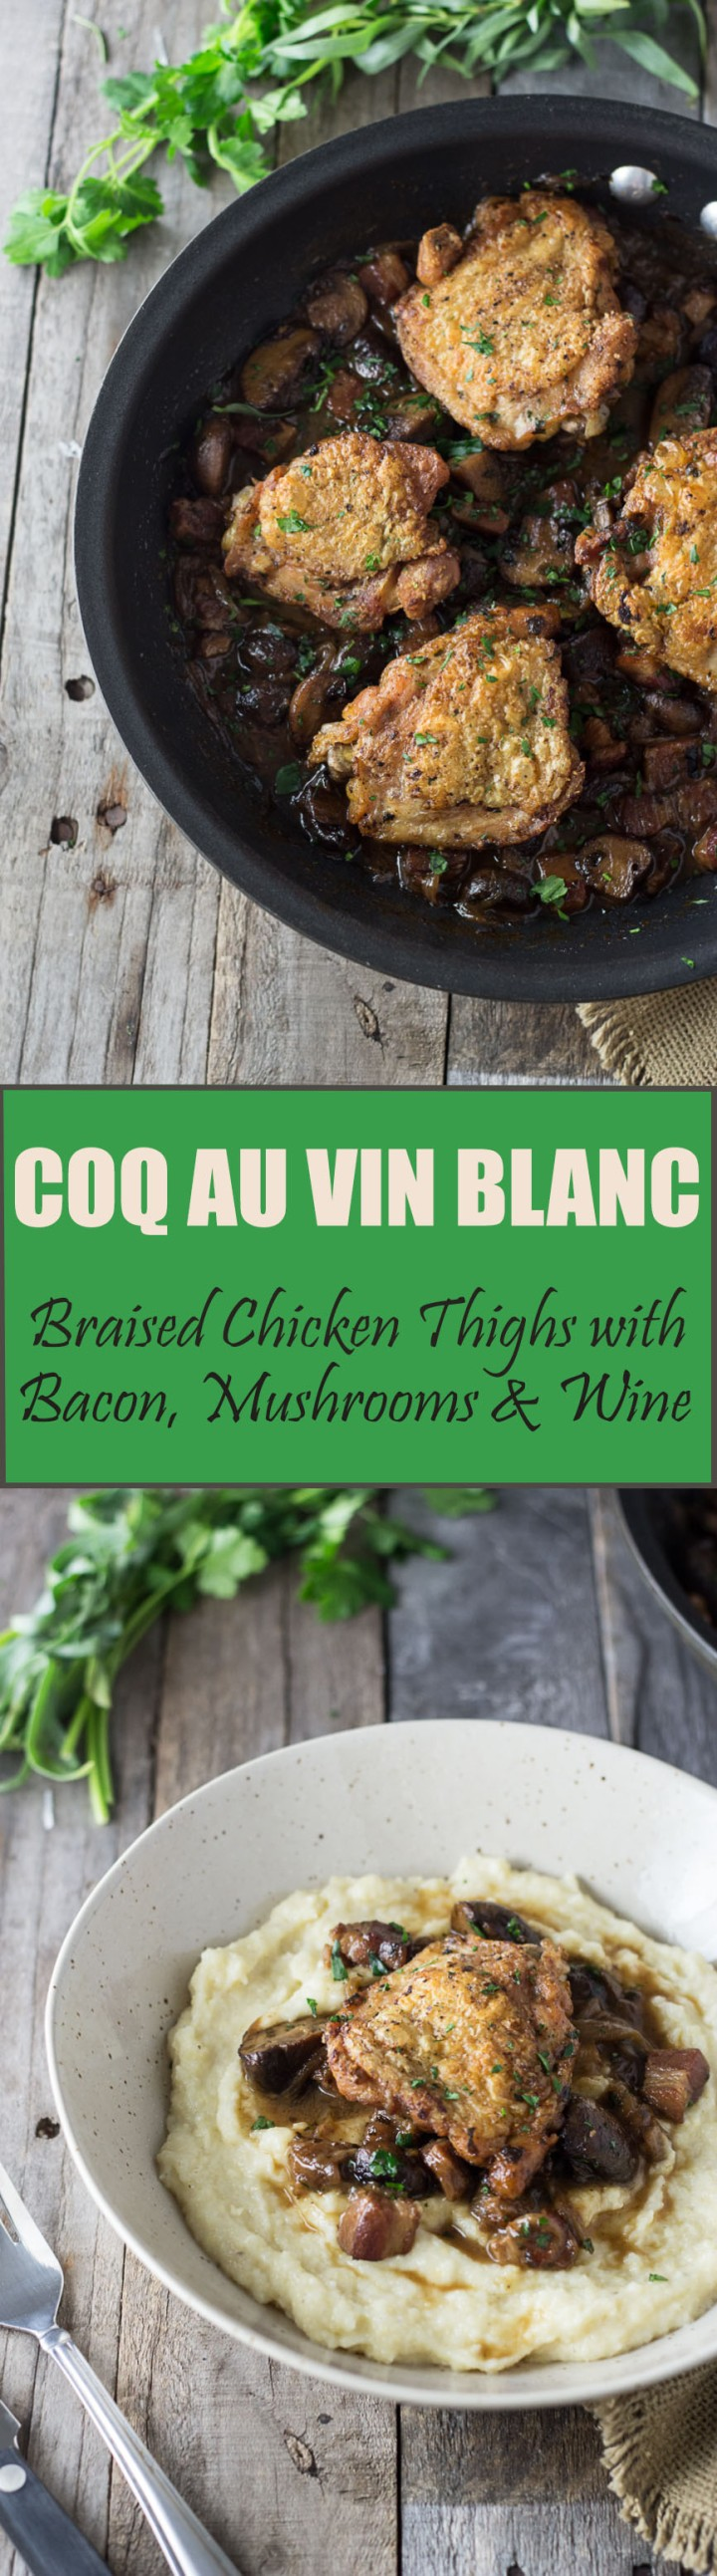 Coq Au Vin Blanc: French Braised Chicken Thighs with White Wine, Bacon & Mushrooms